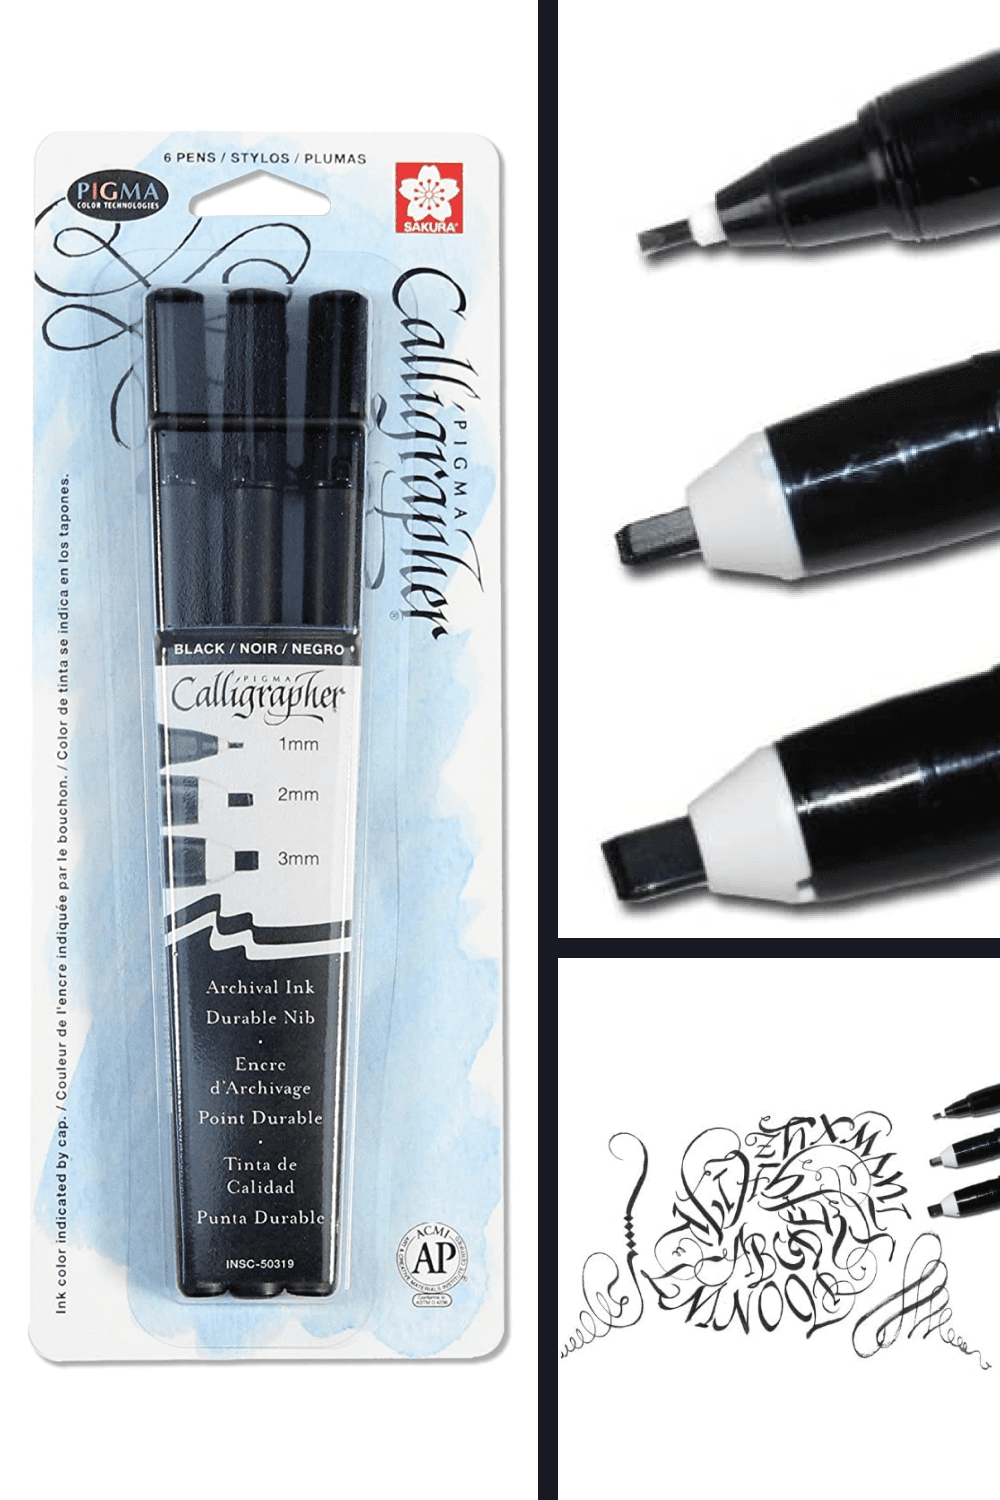 The Pigma Calligrapher pen is a unique, all-in-one, durable lettering art tool that produces crisp edges and sharp hairlines.